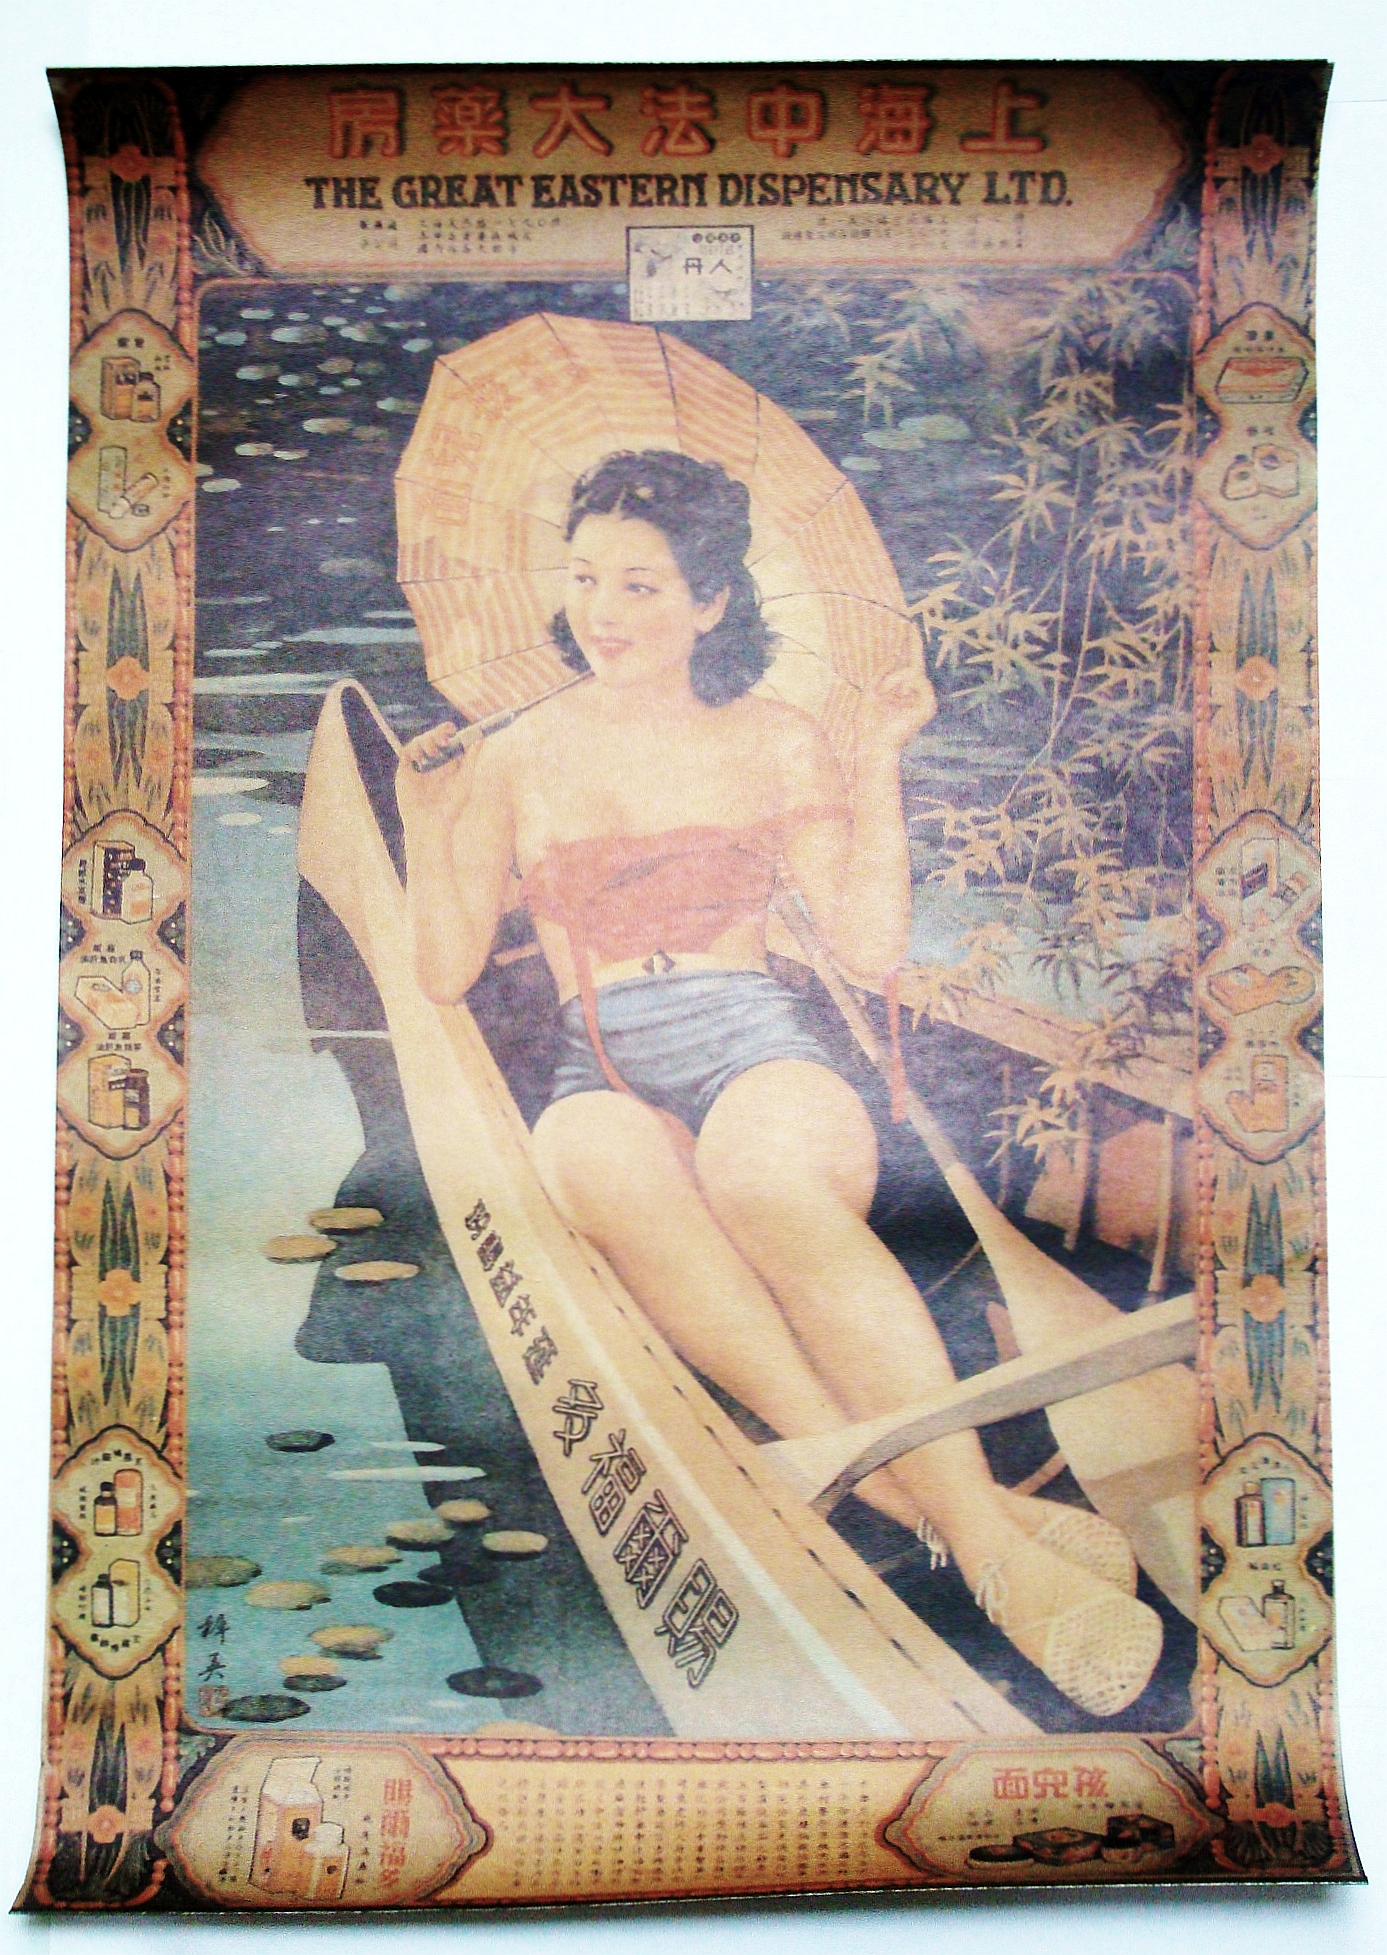 Image for Chinese / Shanghai Replica Soft-Porn Advertising Poster for Great Eastern Dispensary, Ltd. - Features Semi-Topless Beauty in Canoe